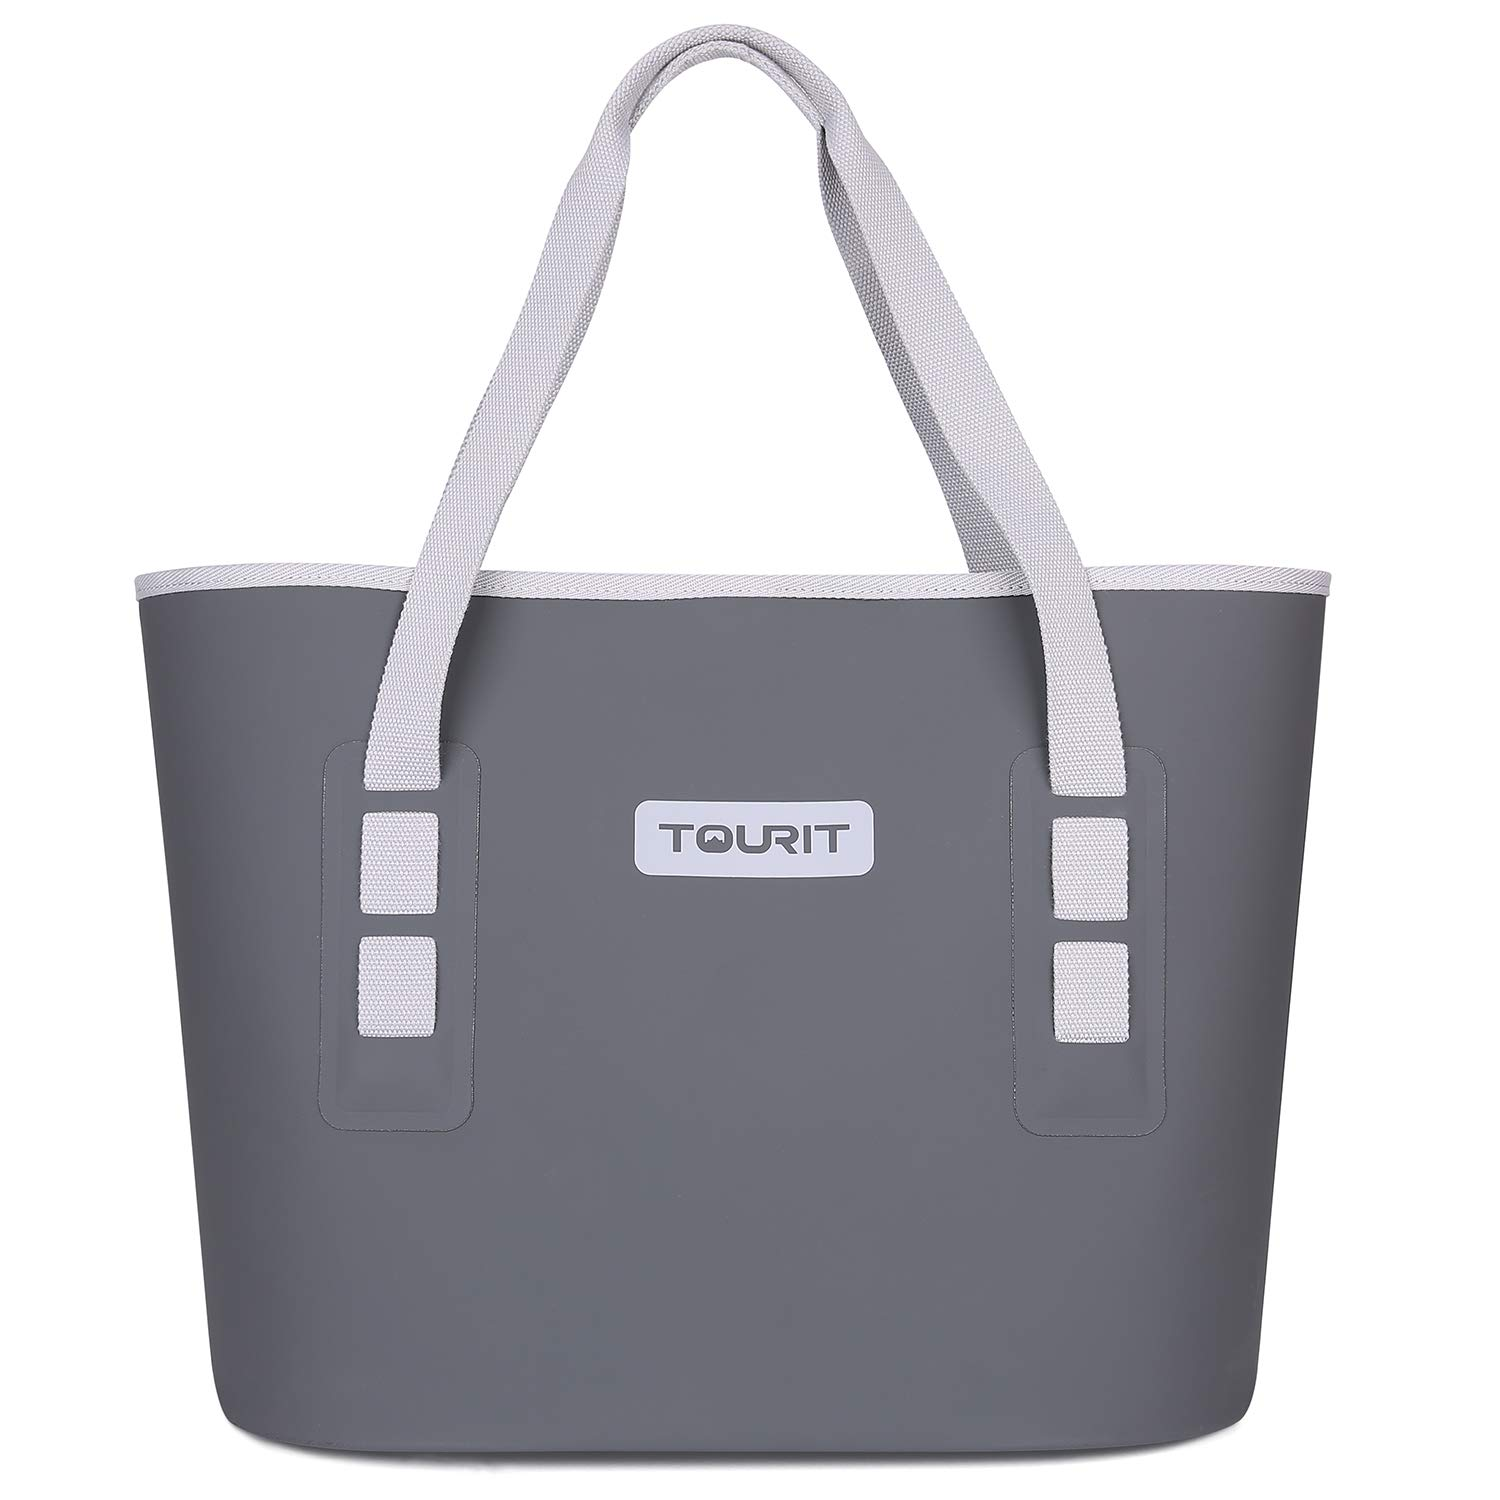 TOURIT Carryall Soft Cooler Leak-Proof All-Purpose Soft Sided Cooler Beach Tote Bag Durable Waterproof for Fishing Camping Sports Picnics Sea Fishing Road Beach Trip Grey